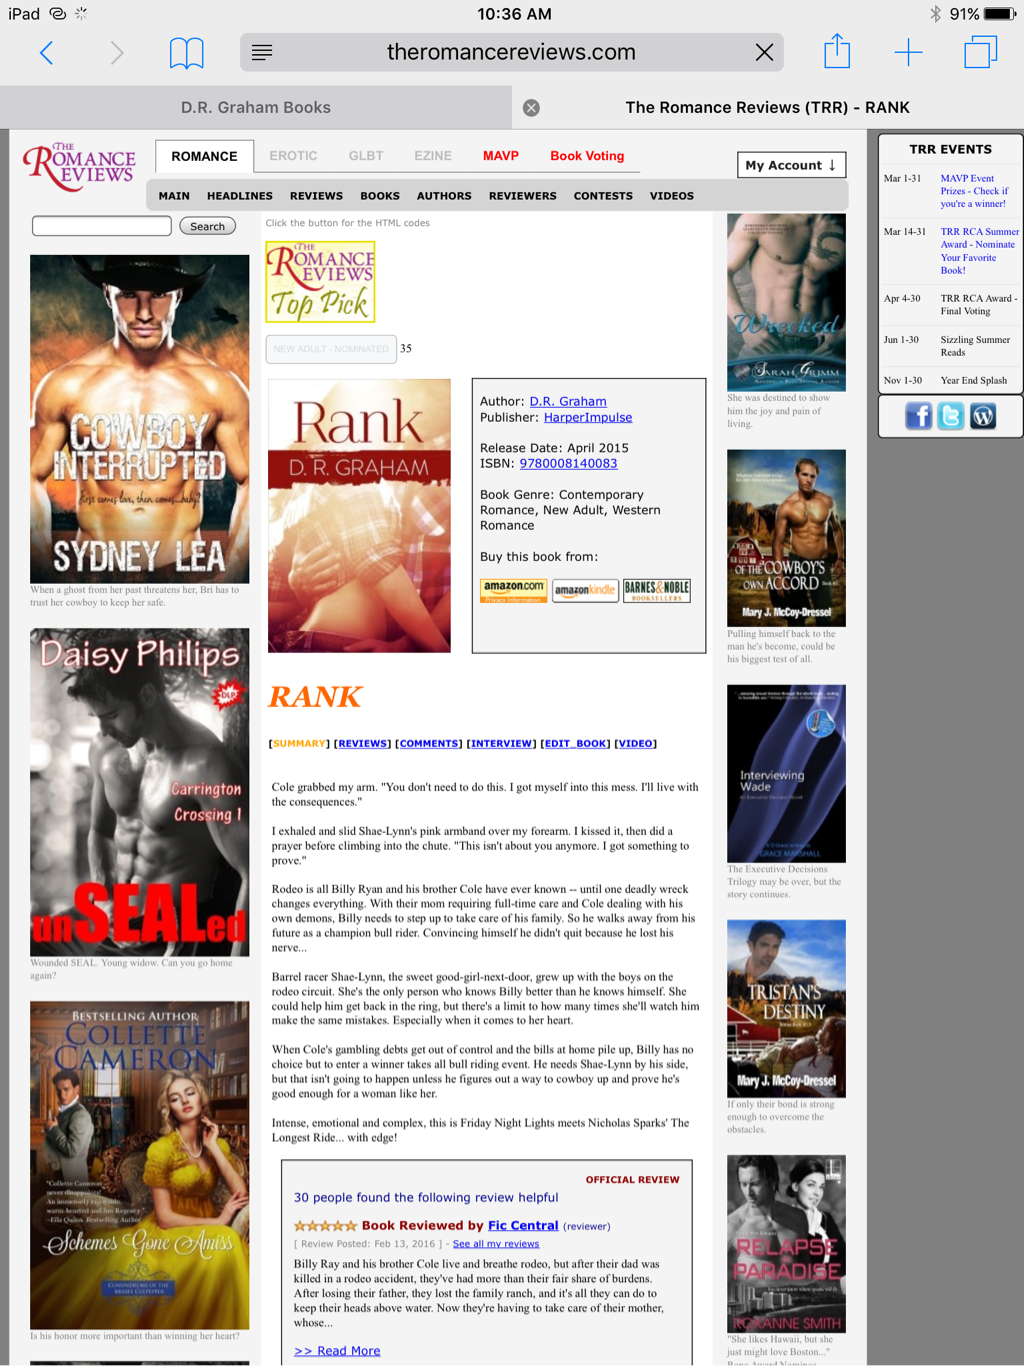 Rank by D.R. Graham Readers Choice Top Pick Contemporary Western Romance and New Adult